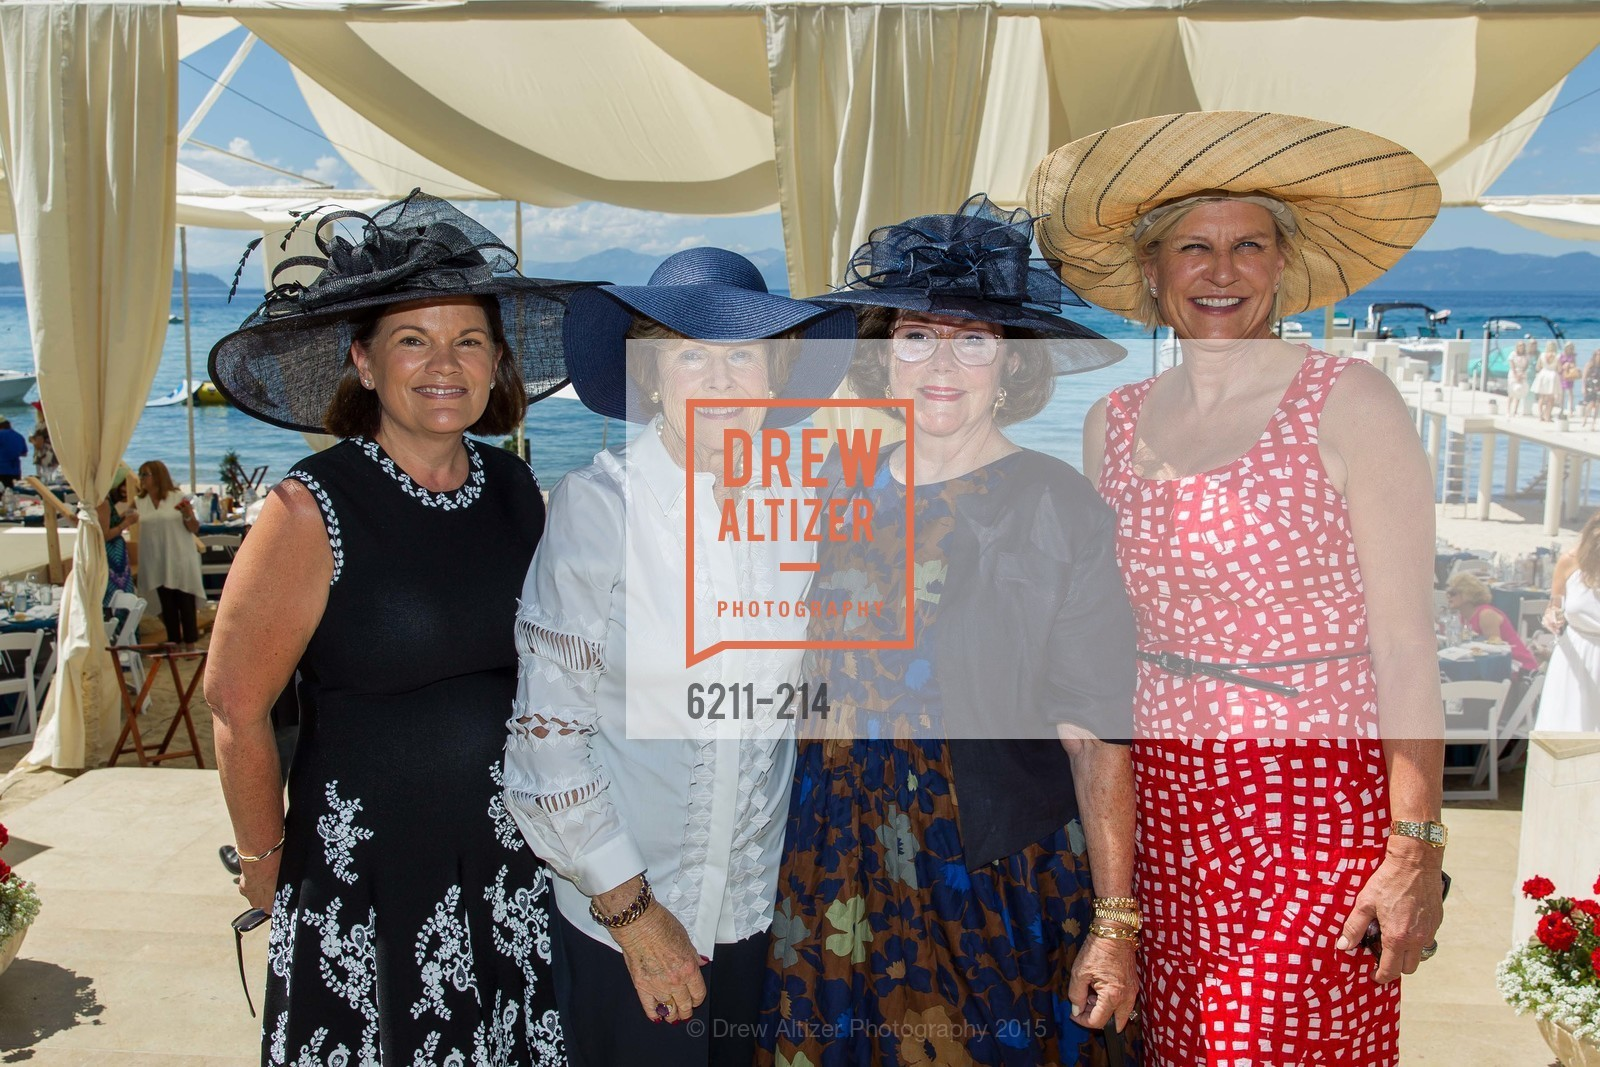 Michelle Barsanti, Saks Fifth Avenue and The League to Save Lake Tahoe Present Fashion on the Lake, Private Residence, August 1st, 2015,Drew Altizer, Drew Altizer Photography, full-service agency, private events, San Francisco photographer, photographer california